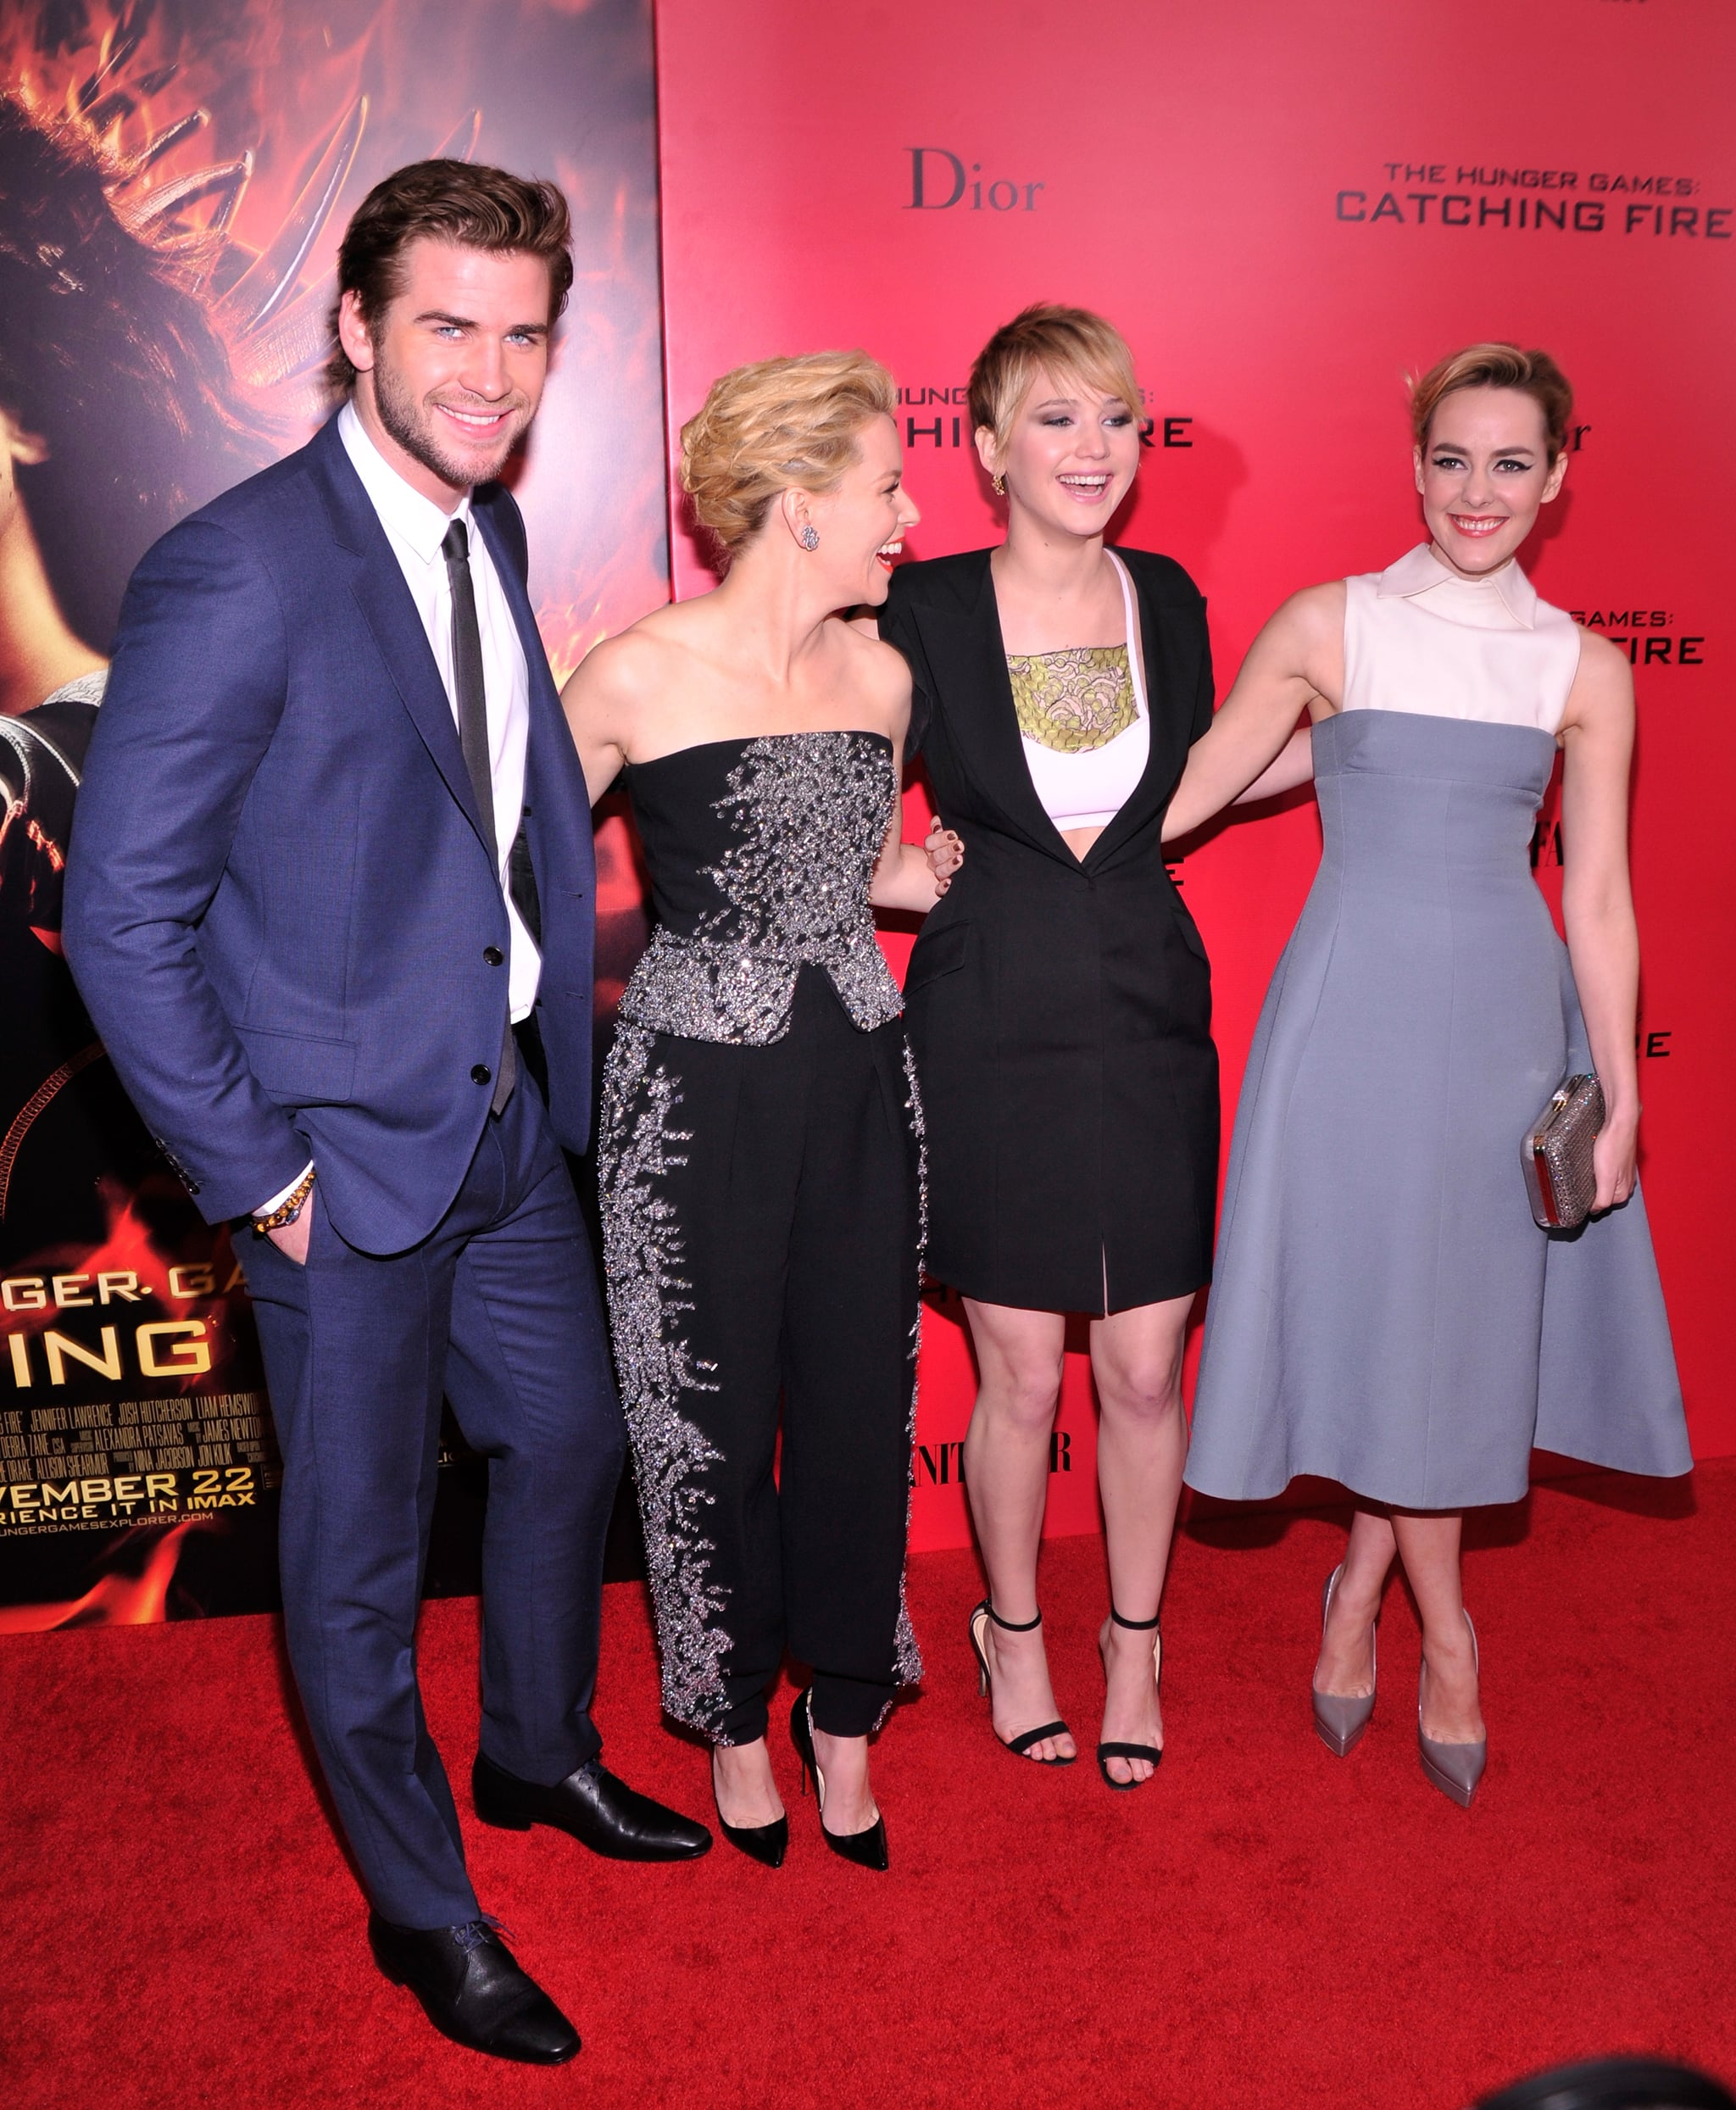 Jennifer Lawrence, Liam Hemsworth, Elizabeth Banks, and Jena Malone shared smiles and laughs at the event.